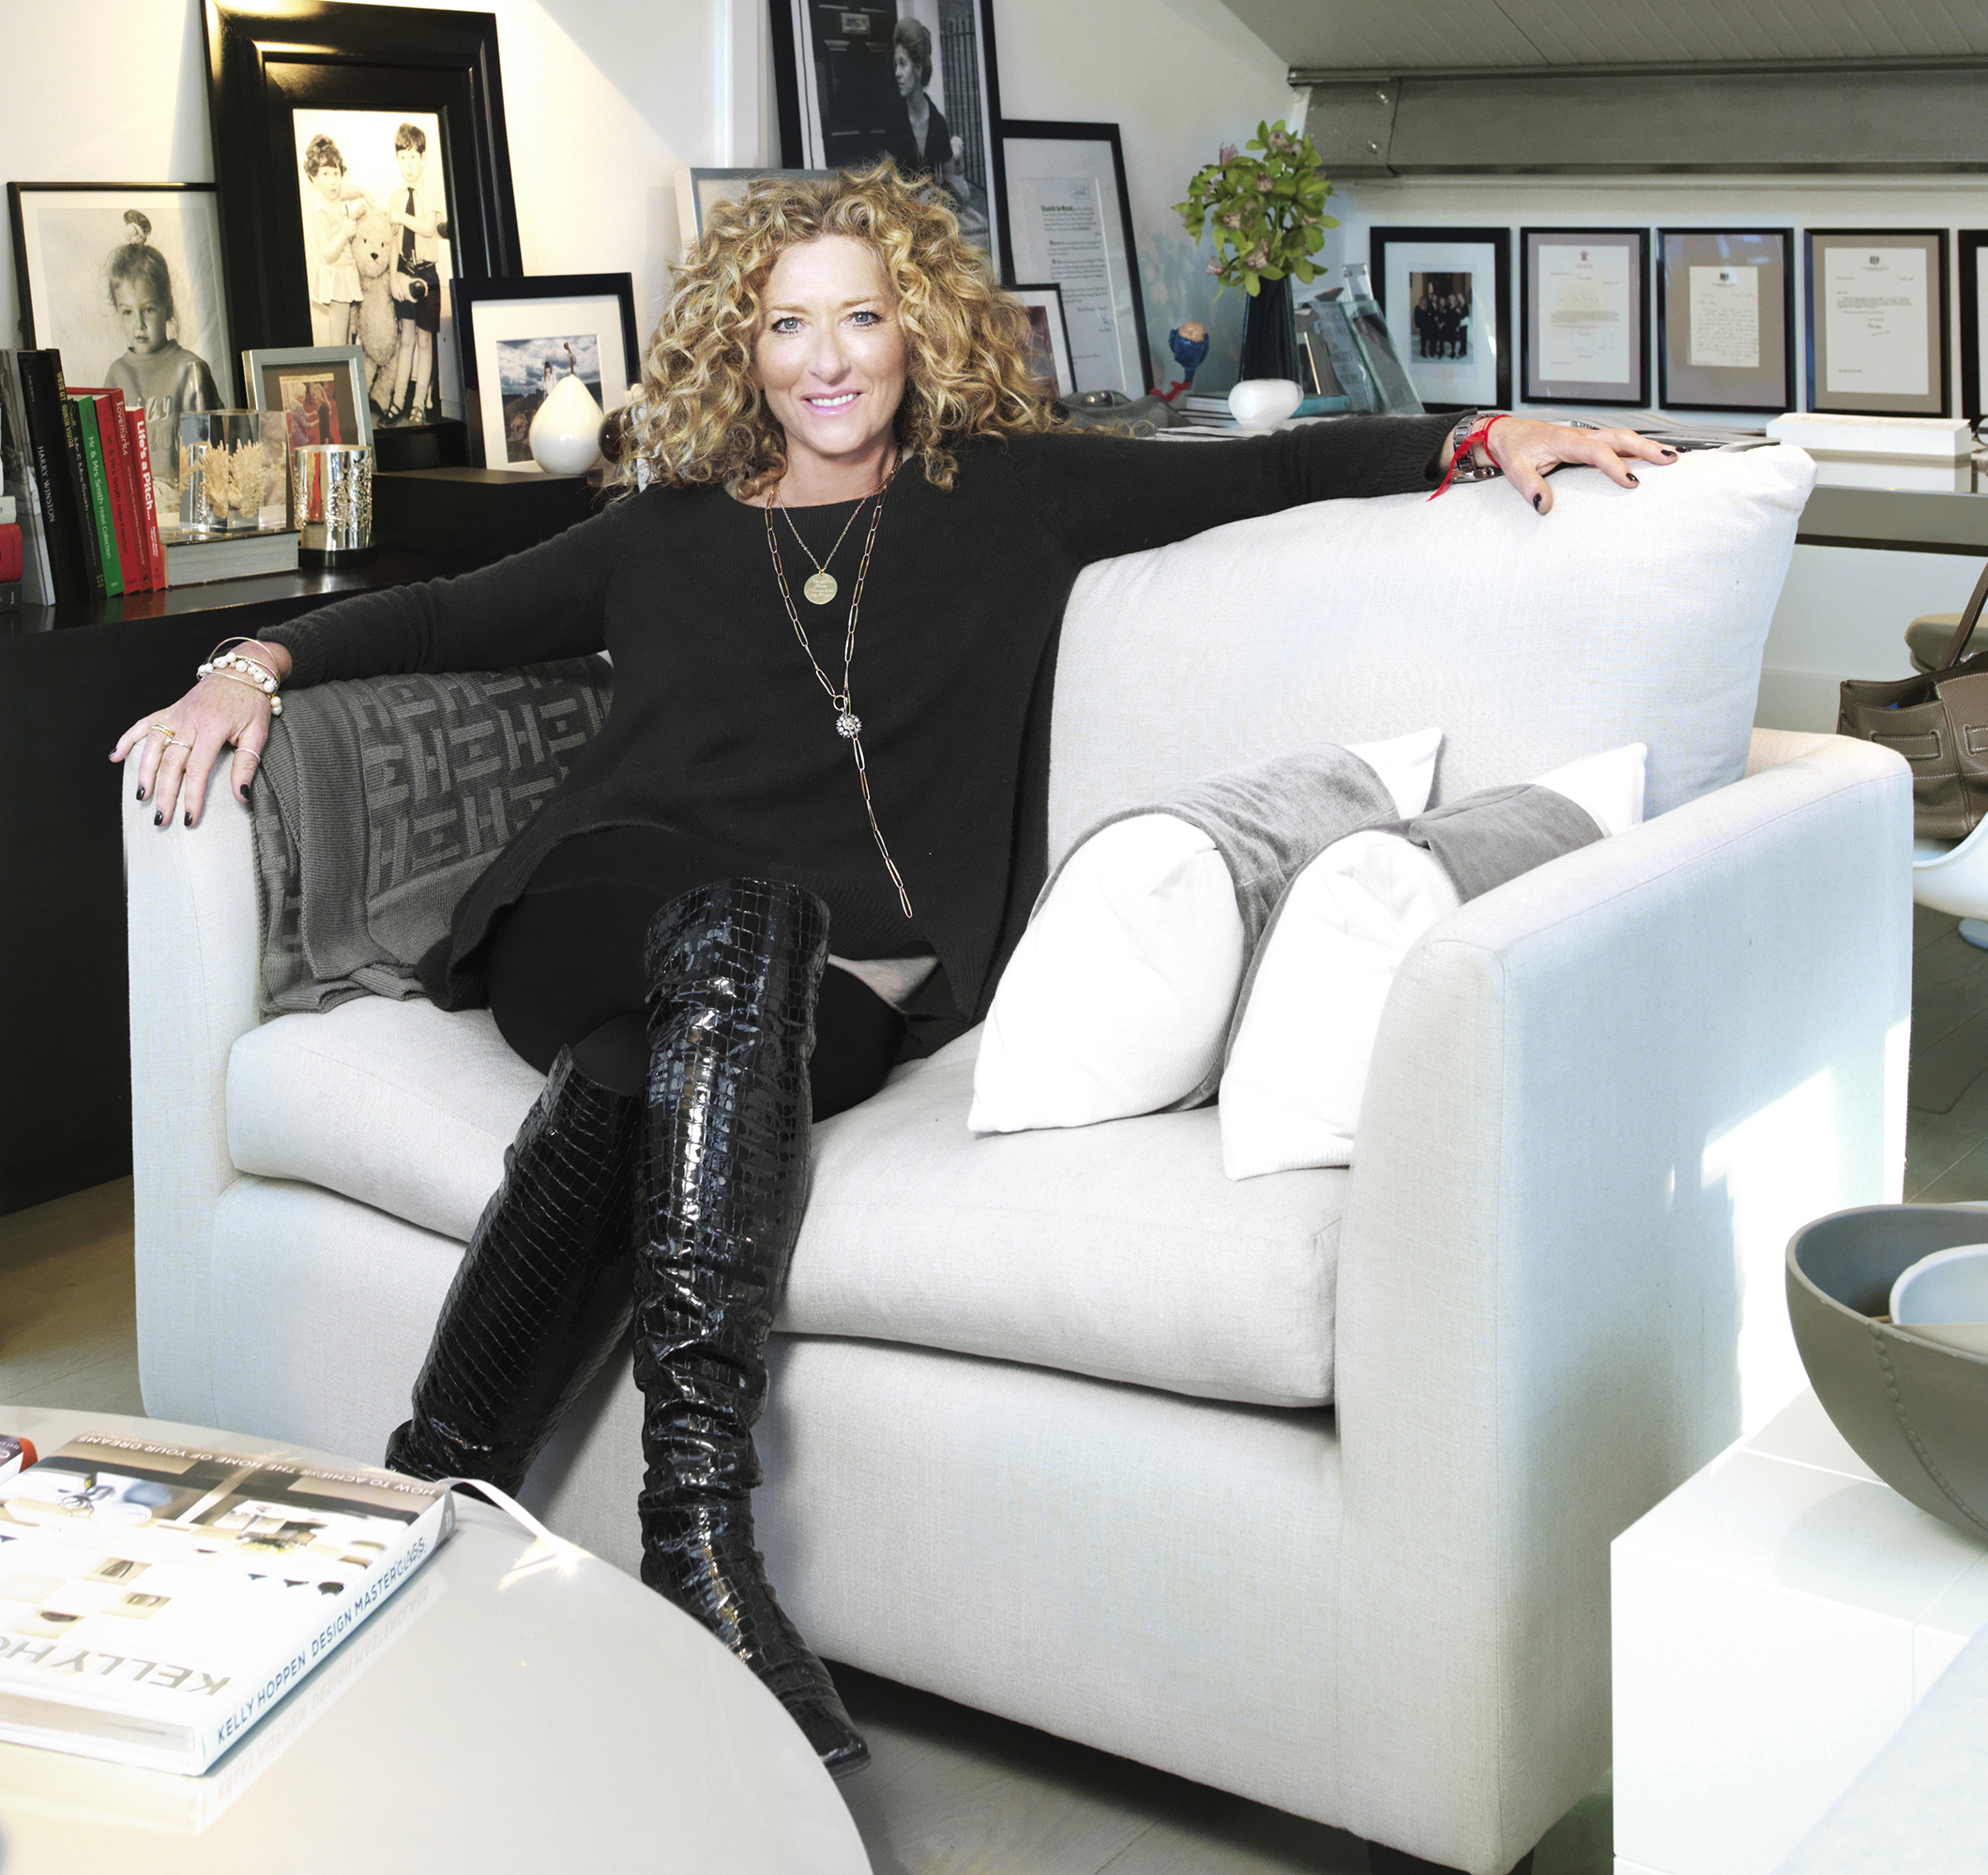 Kelly Hoppen Launches 11 million Crowdfunding